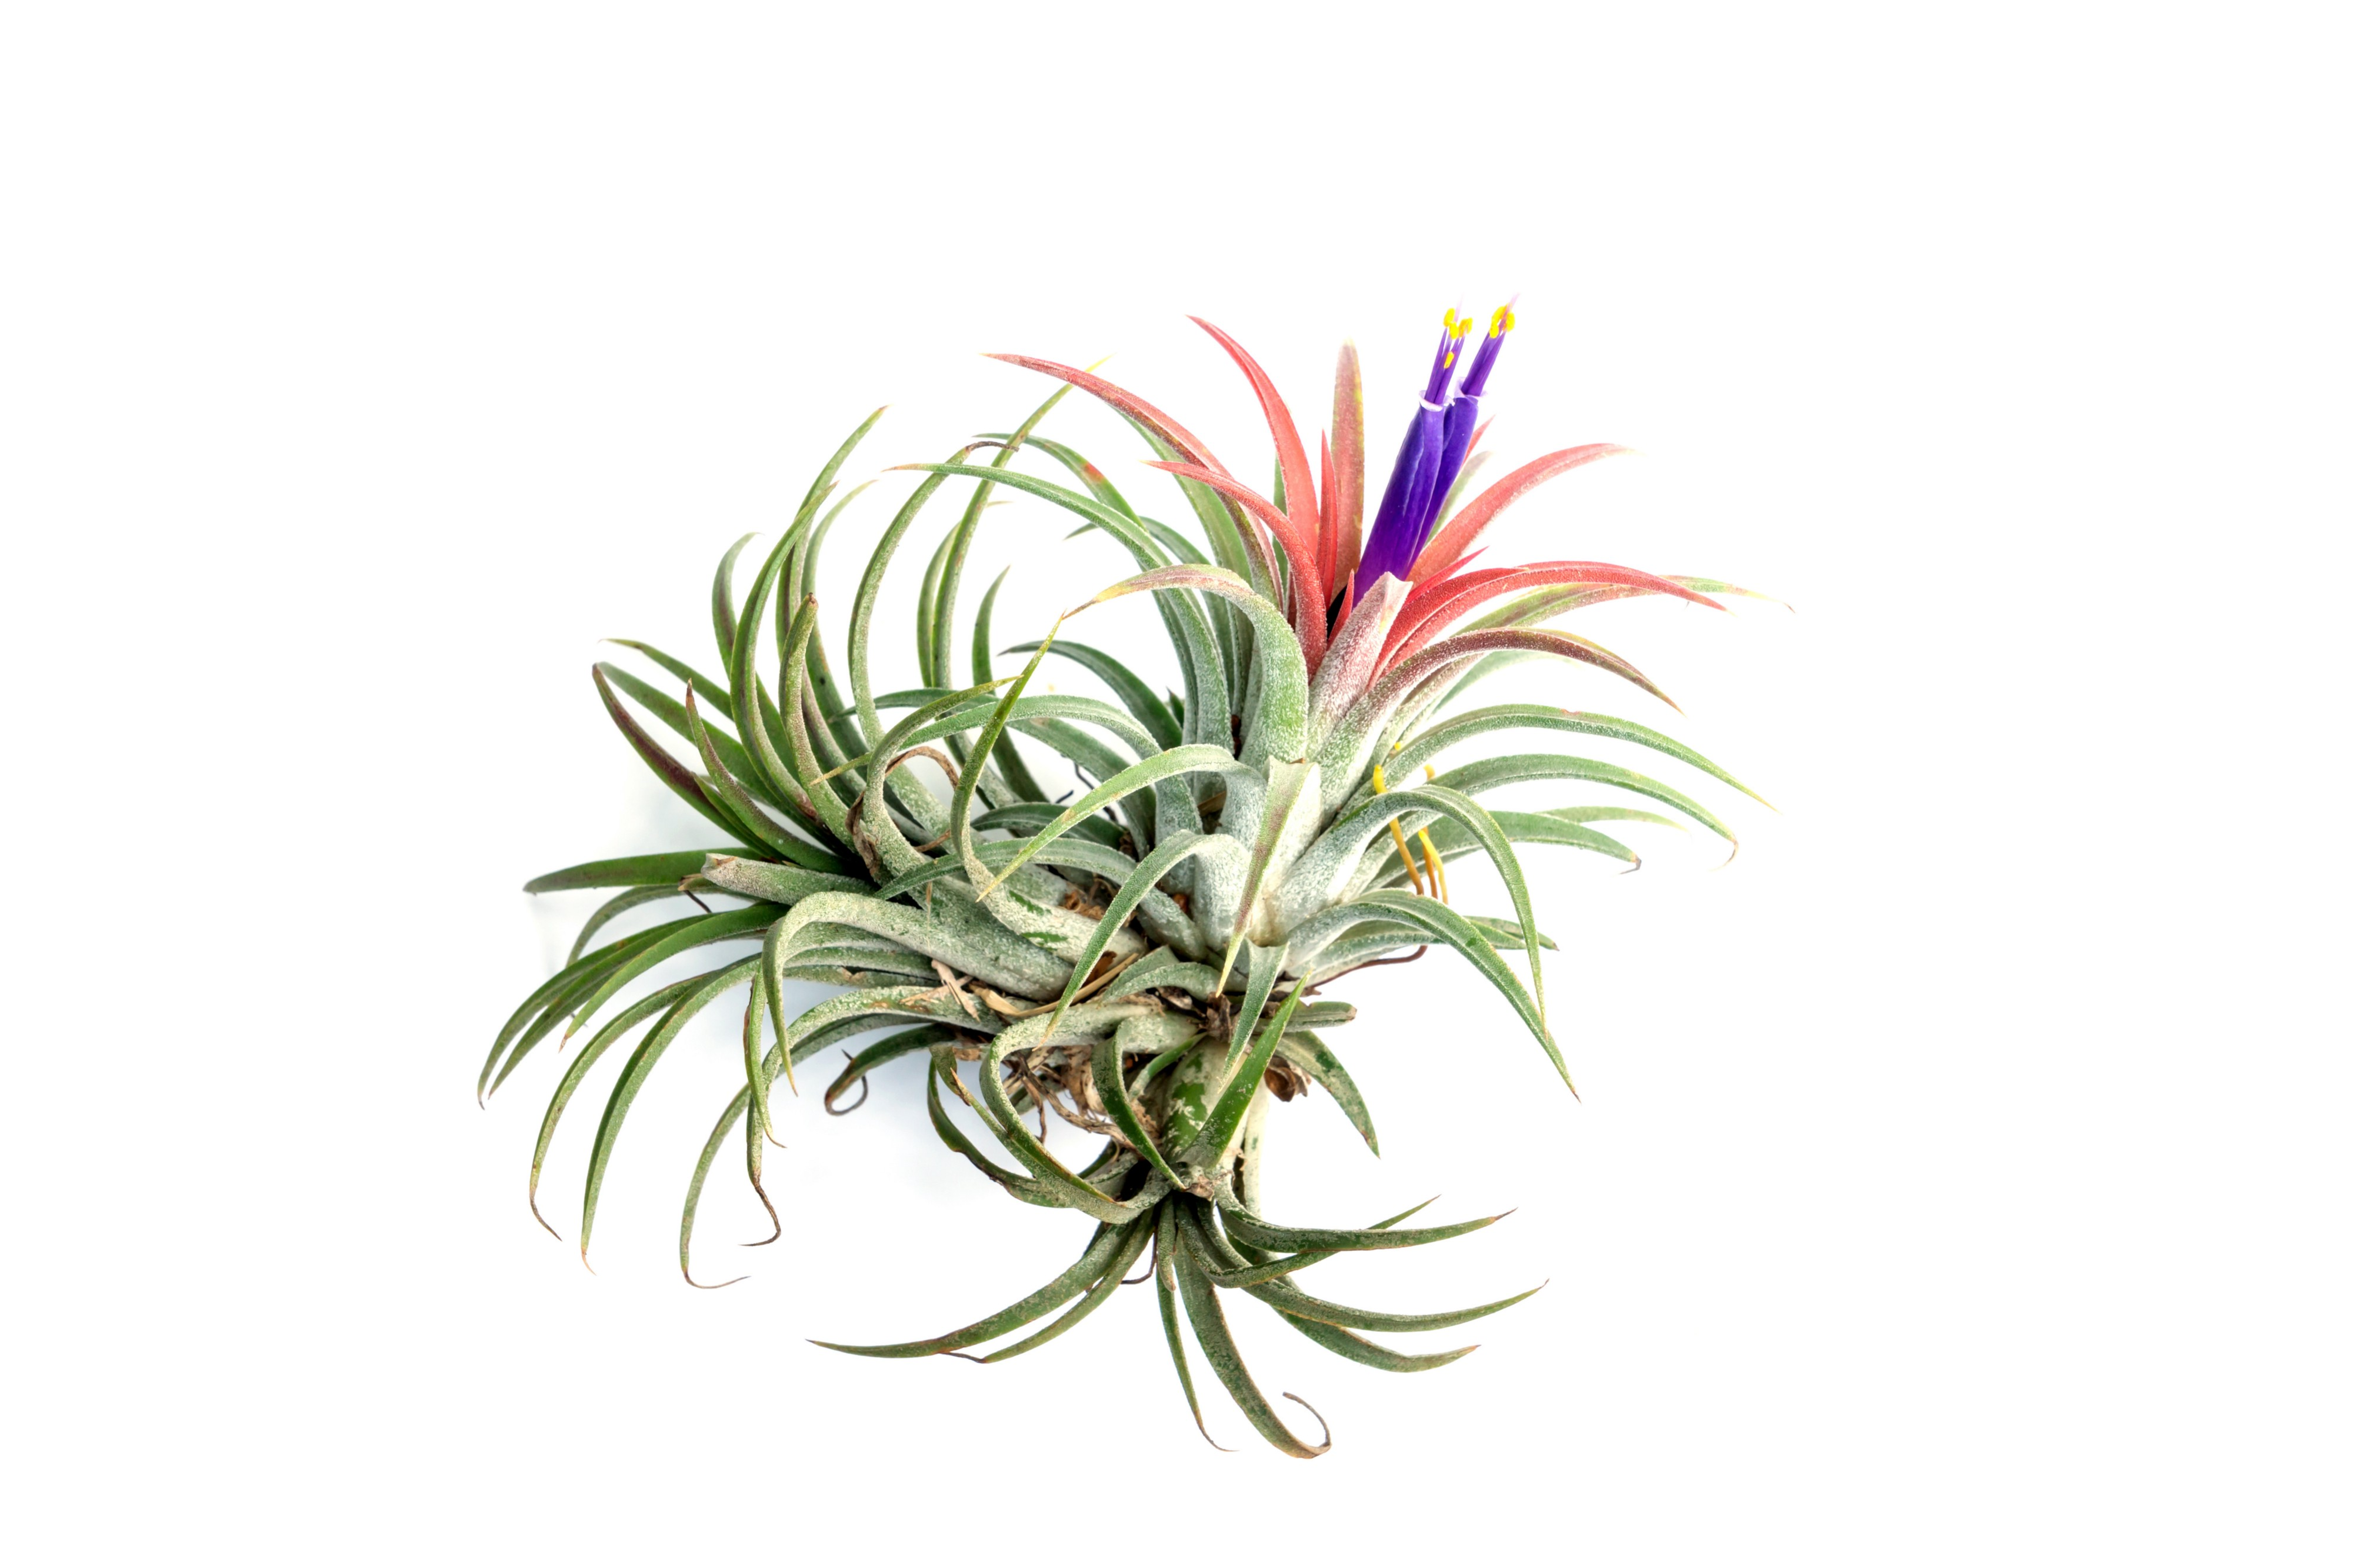 Air plant with spiky green leaves, bare roots, and purple and pink flowers